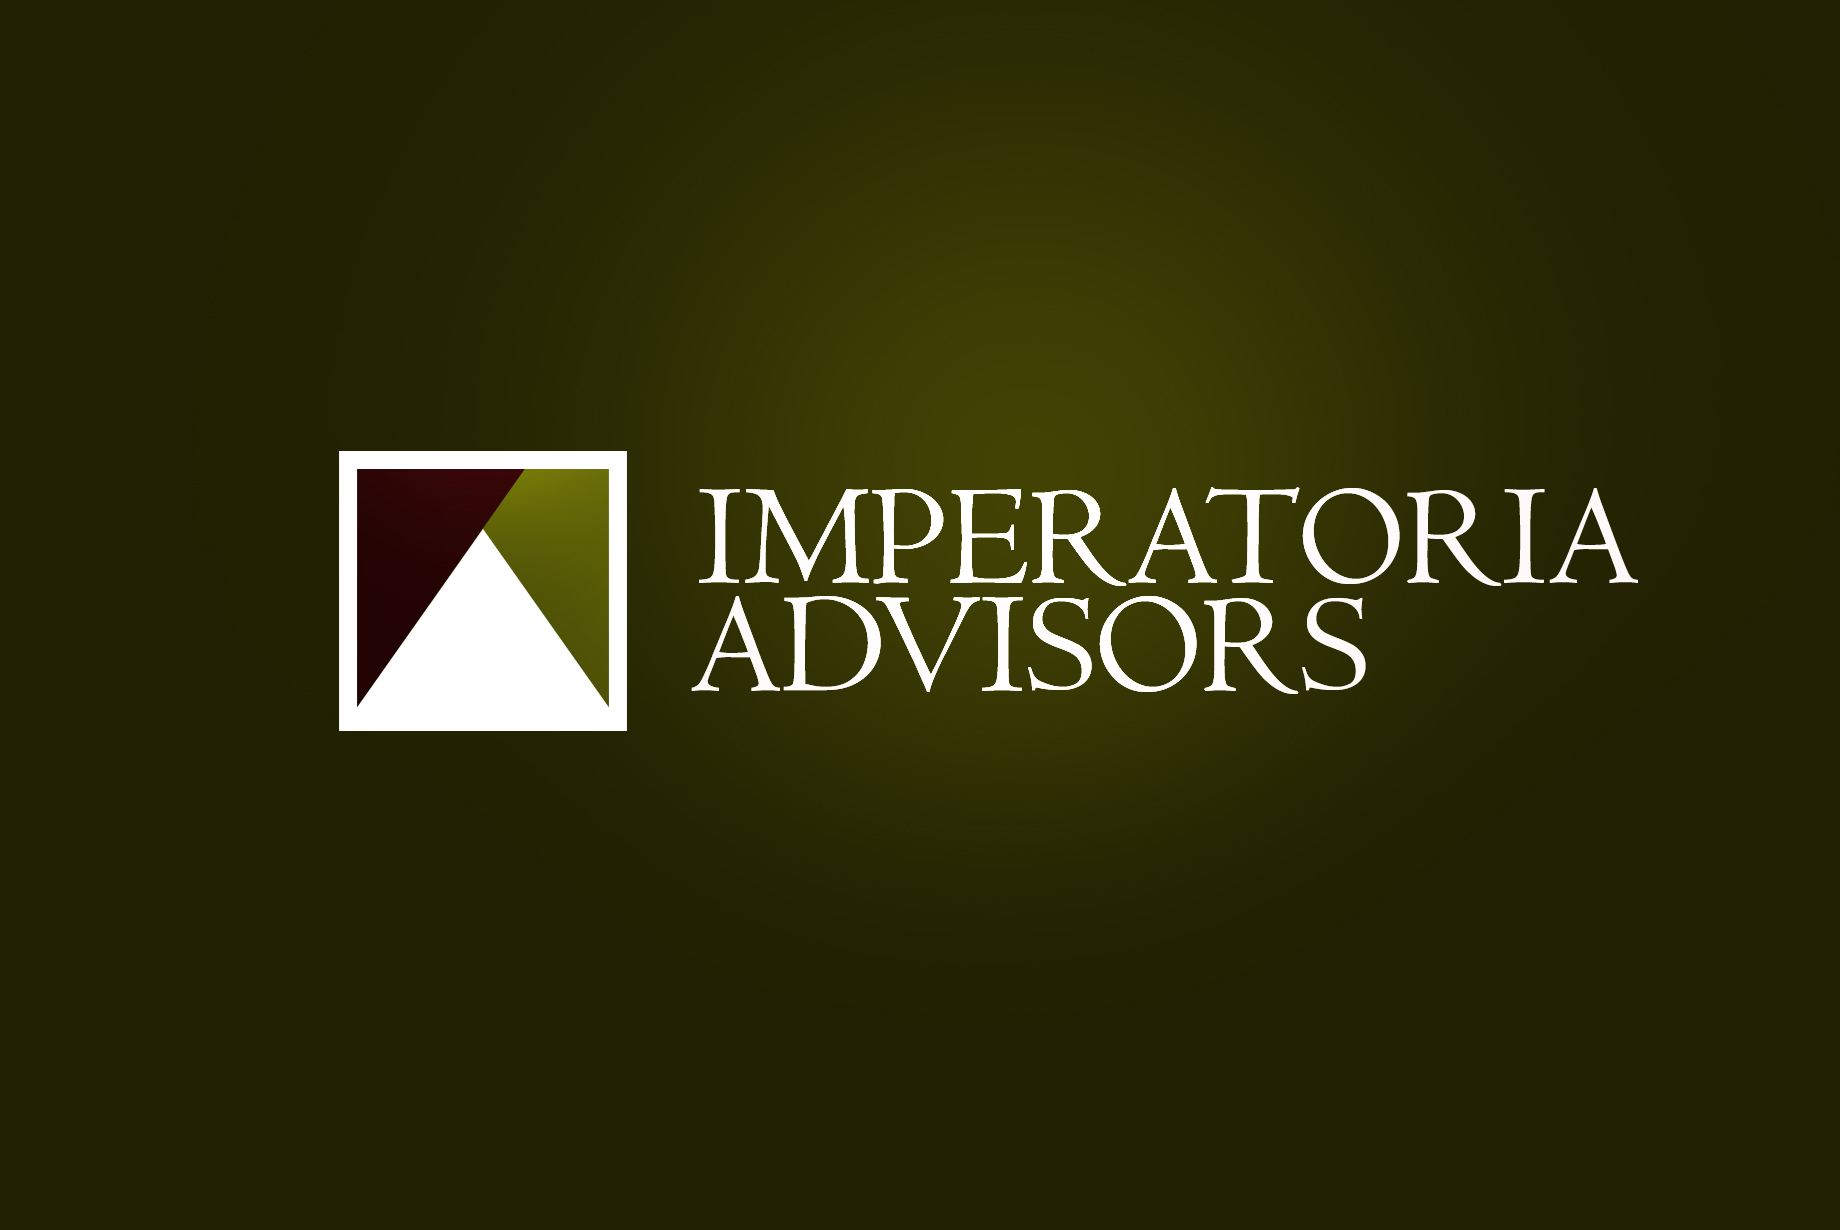 Logo Design by Jan Chua - Entry No. 84 in the Logo Design Contest Unique Logo Design Wanted for Imperatoria Advisors.